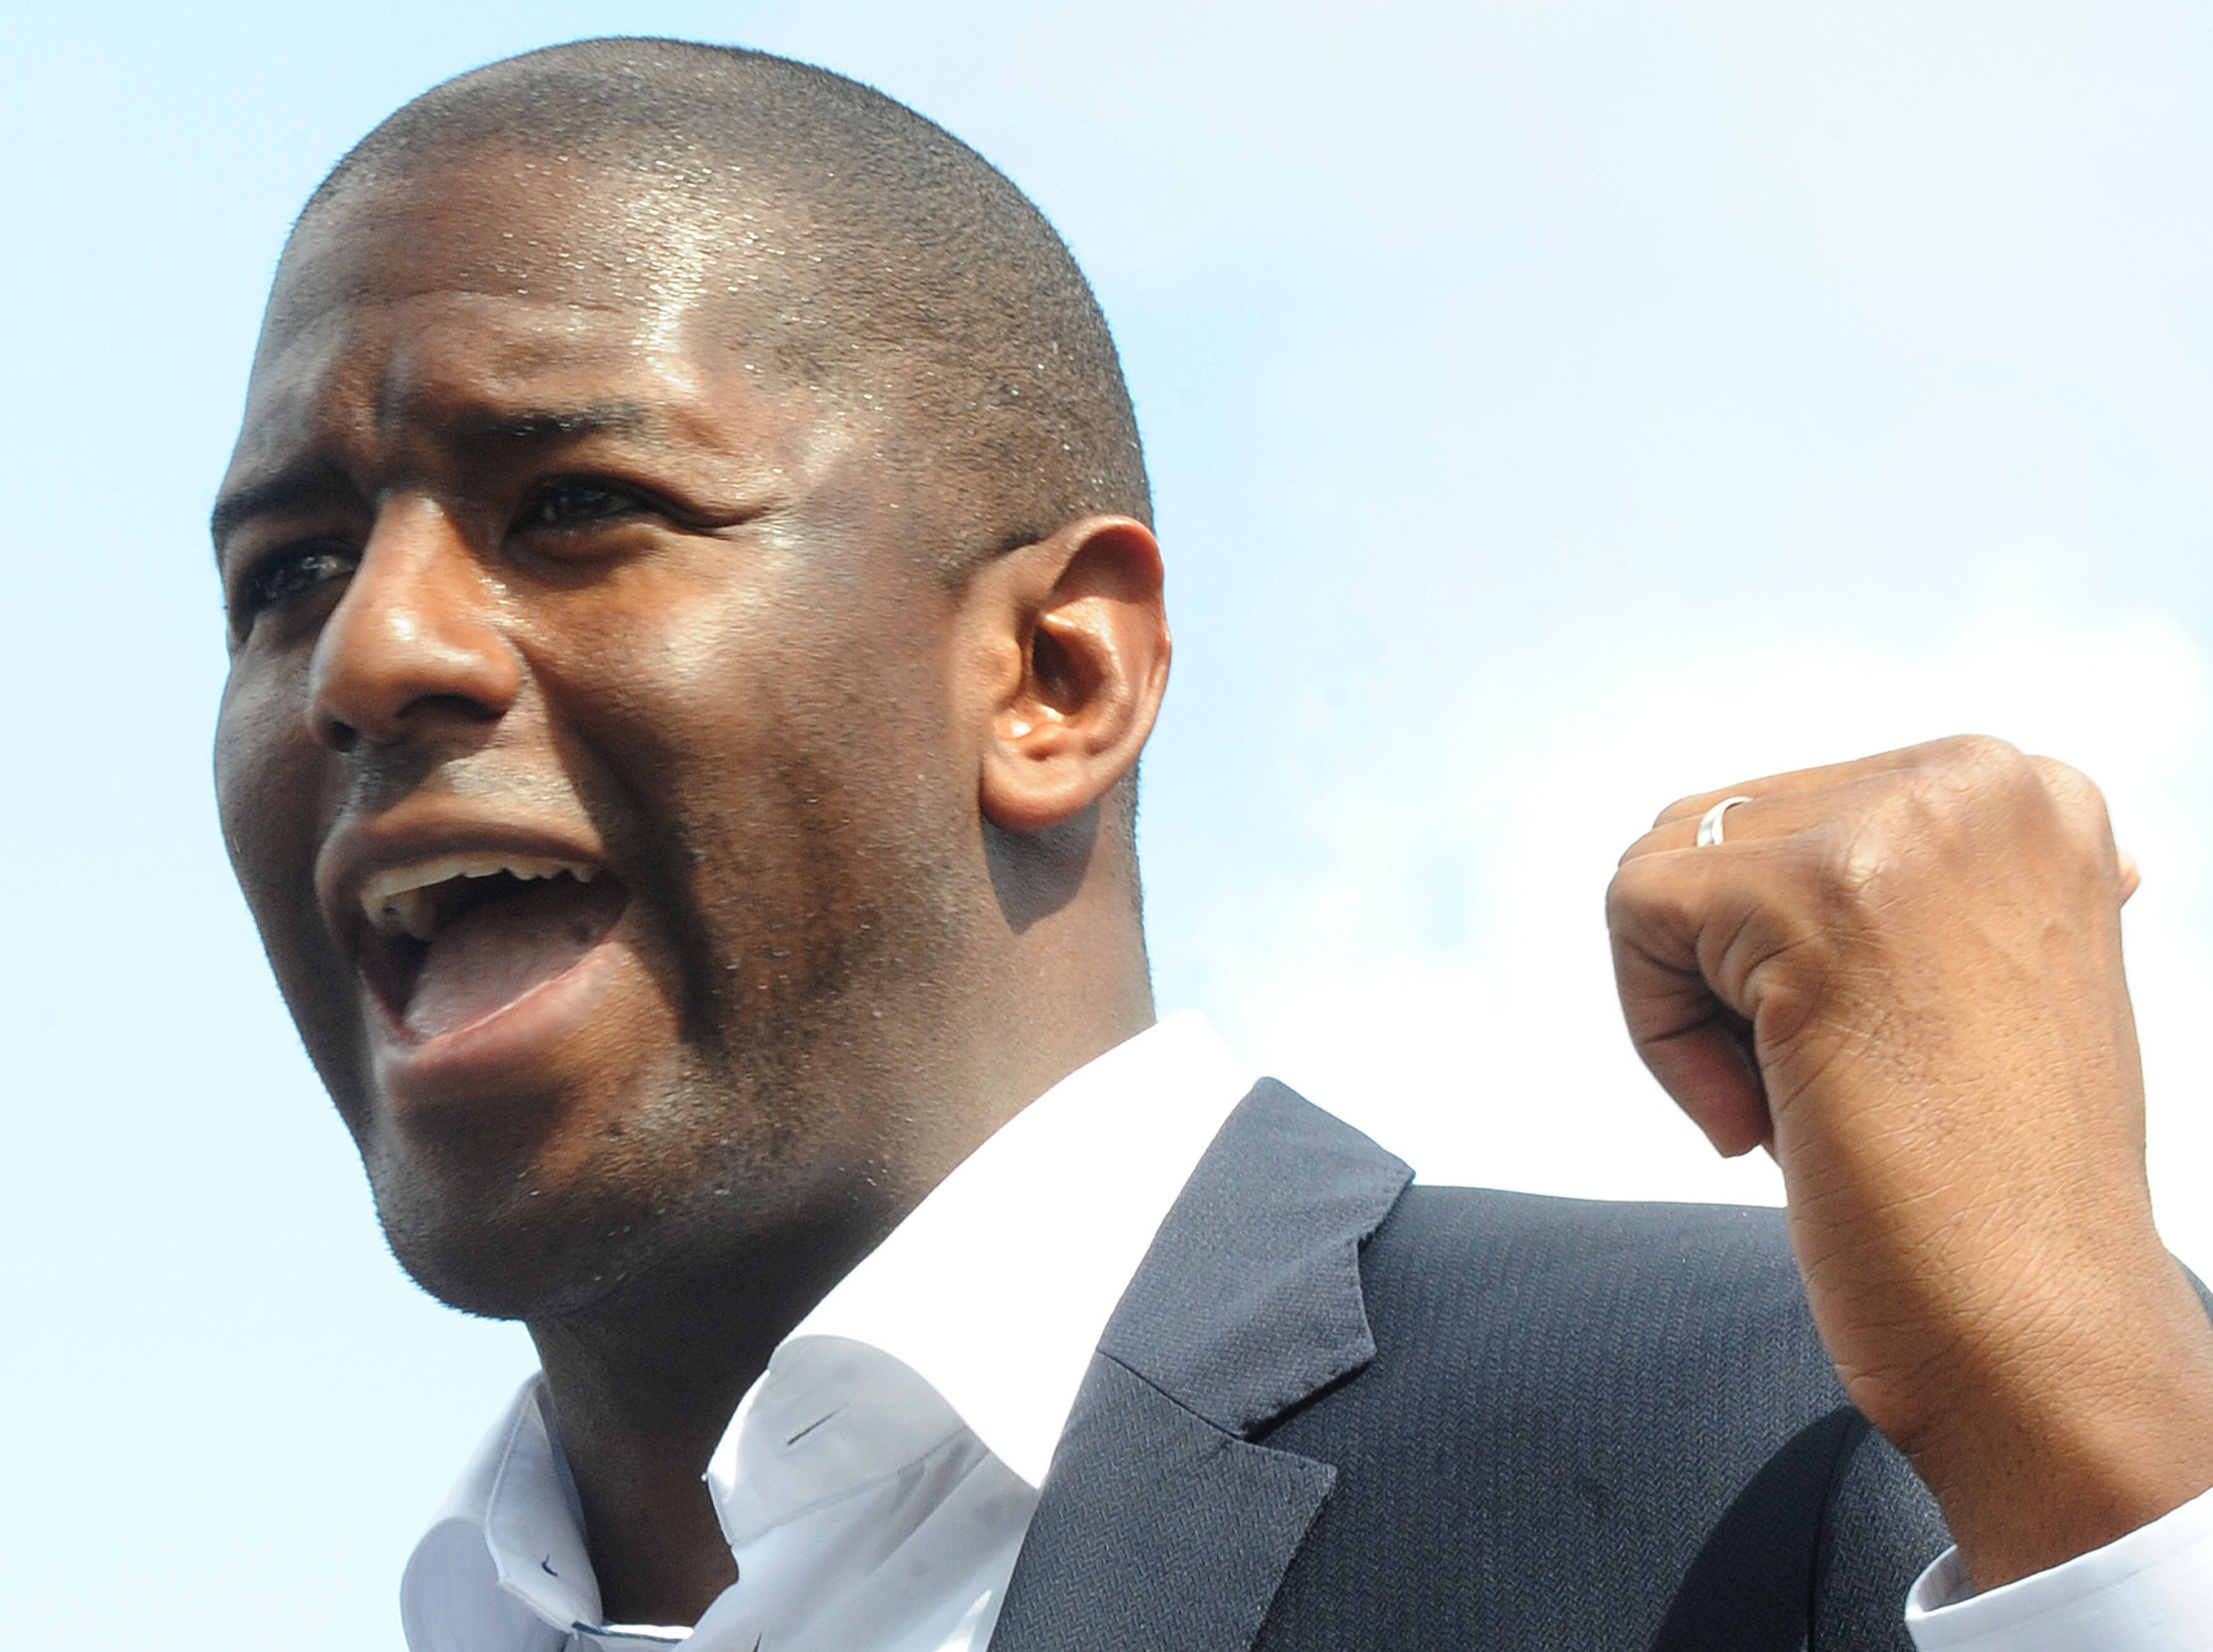 Democratic gubernatorial nominee Andrew Gillum speaks at a campaign event on October 4, 2018 beside Interstate 4 in downtown Orlando, Florida. Gillum announced that his campaign had received the endorsement of Orlando Mayor Buddy Dyer, Tampa Mayor Bob Buckhorn, and St. Petersburg Mayor Rick Kriseman, all Democratic mayors of major cities in the electorally important I-4 corridor.    (Photo by Paul Hennessy/NurPhoto via Getty Images)